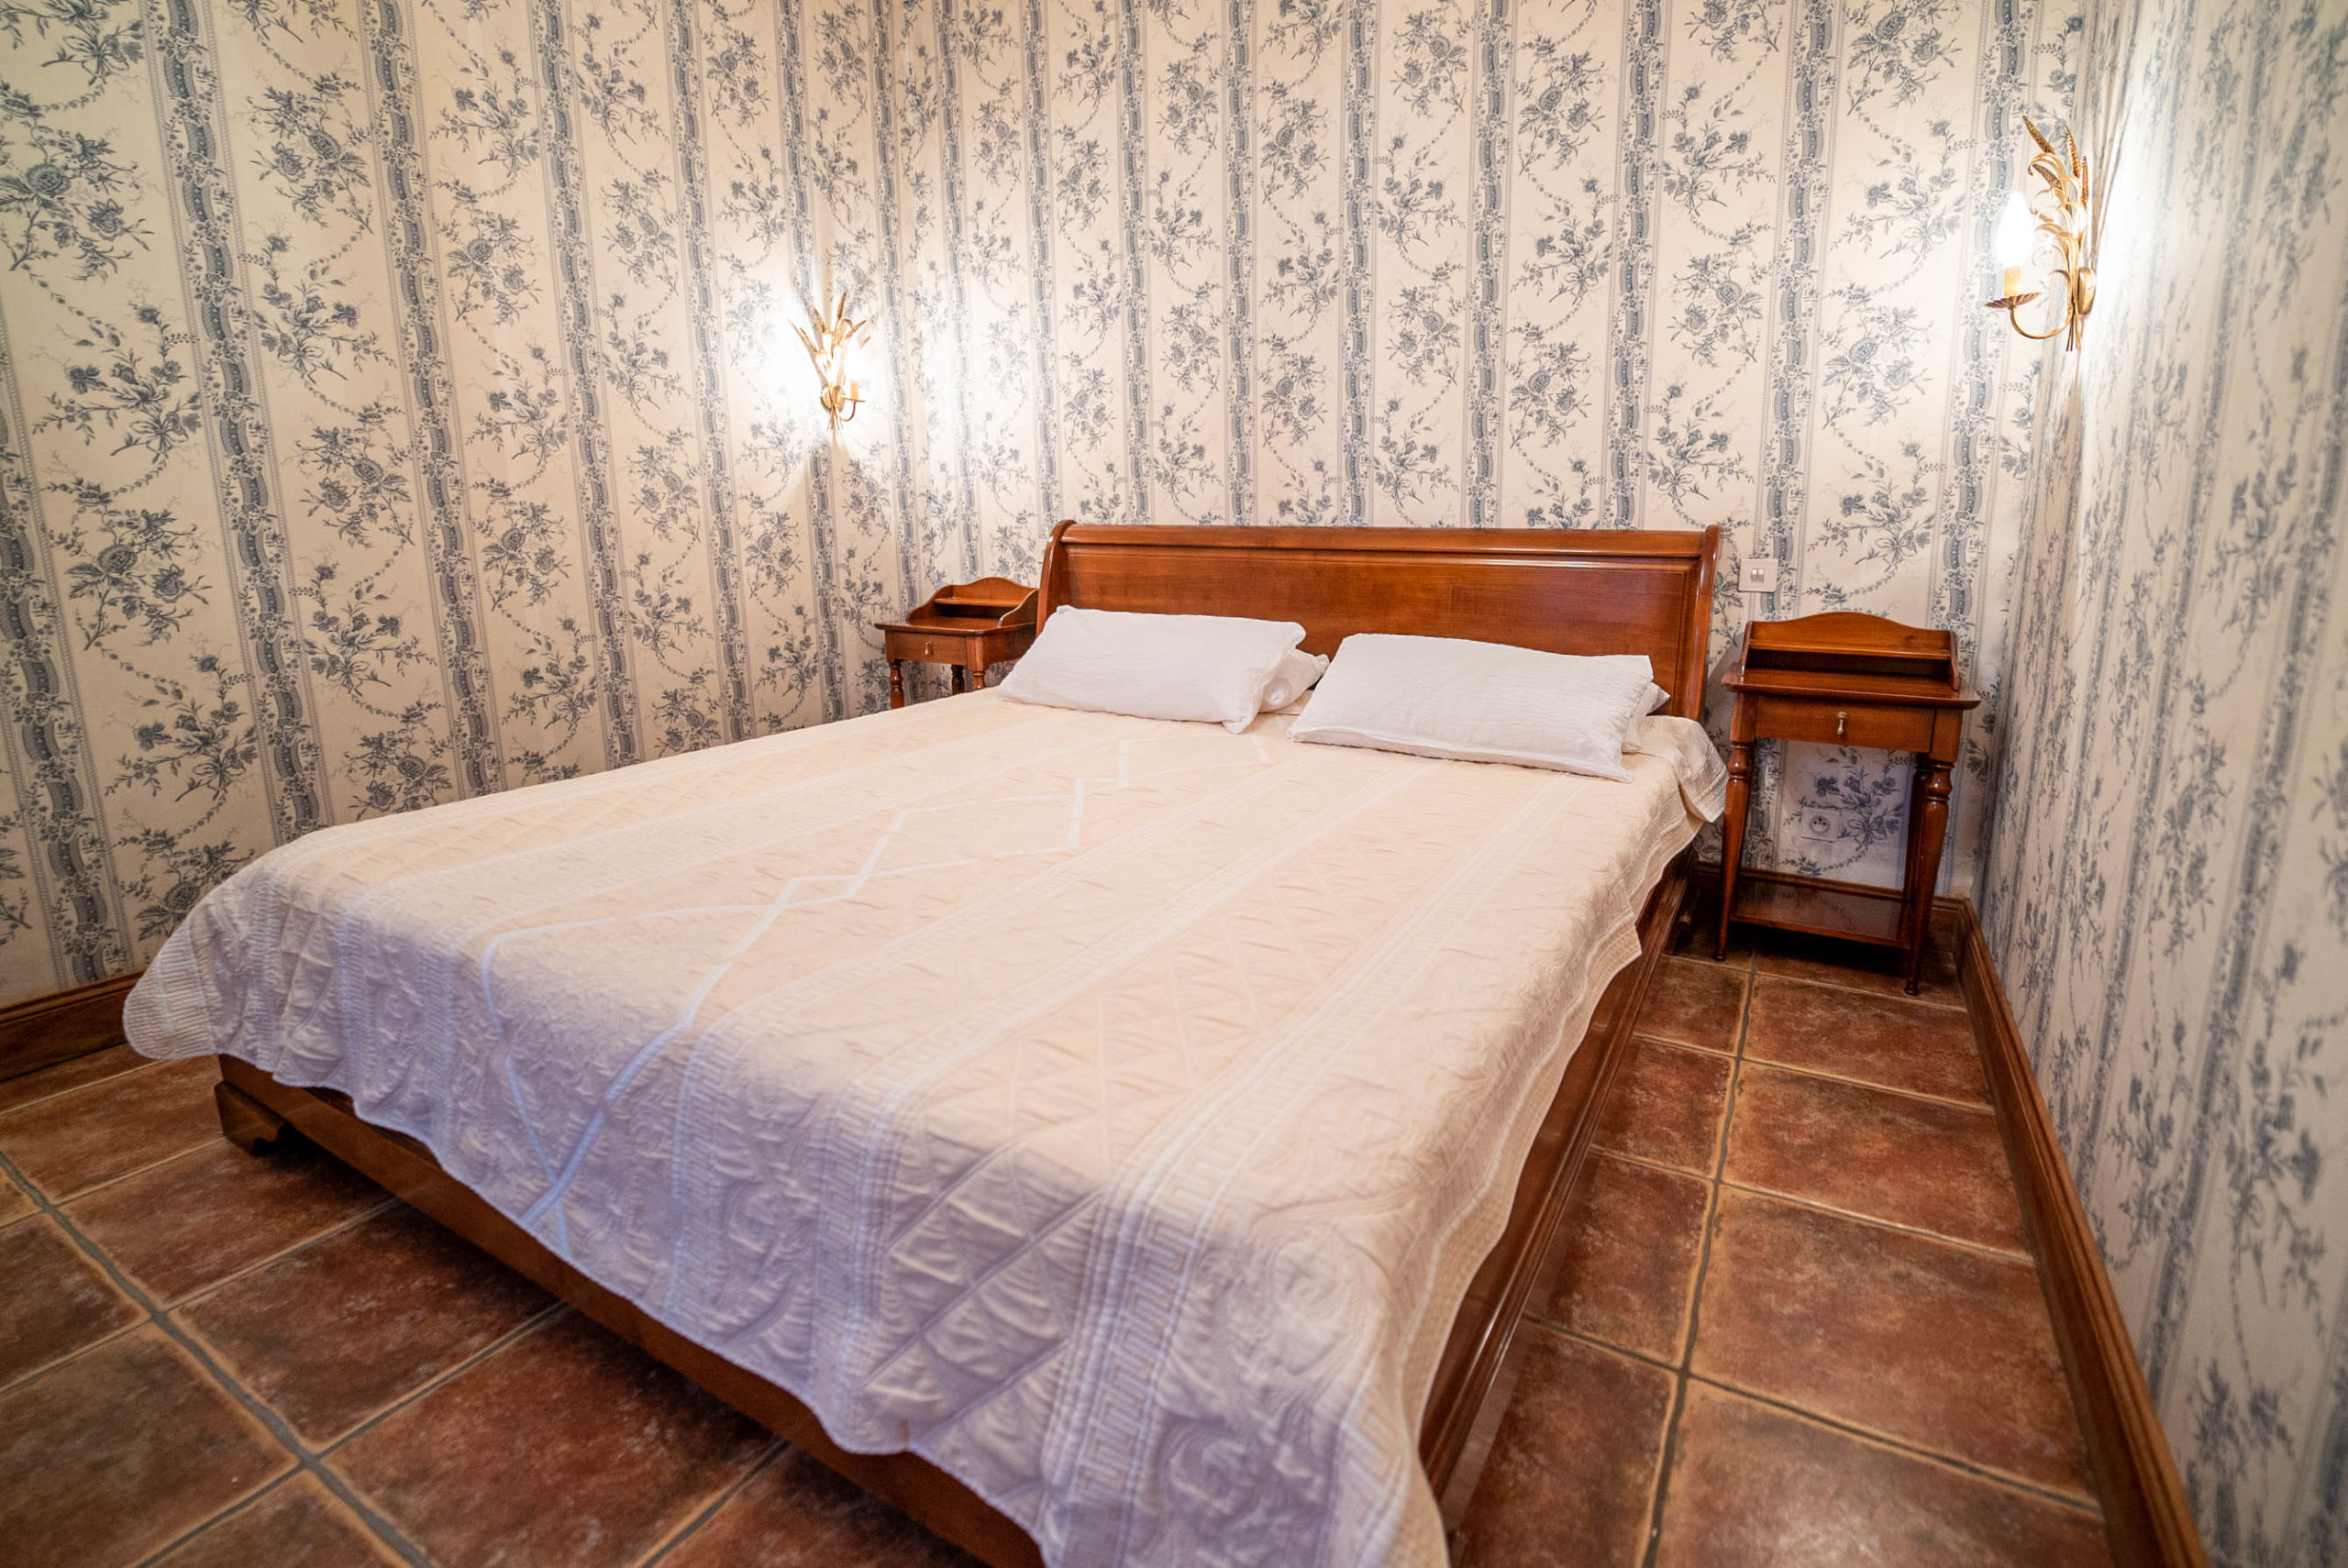 Chambre suite marquise chateau Rauly location bergerac Monbazillac